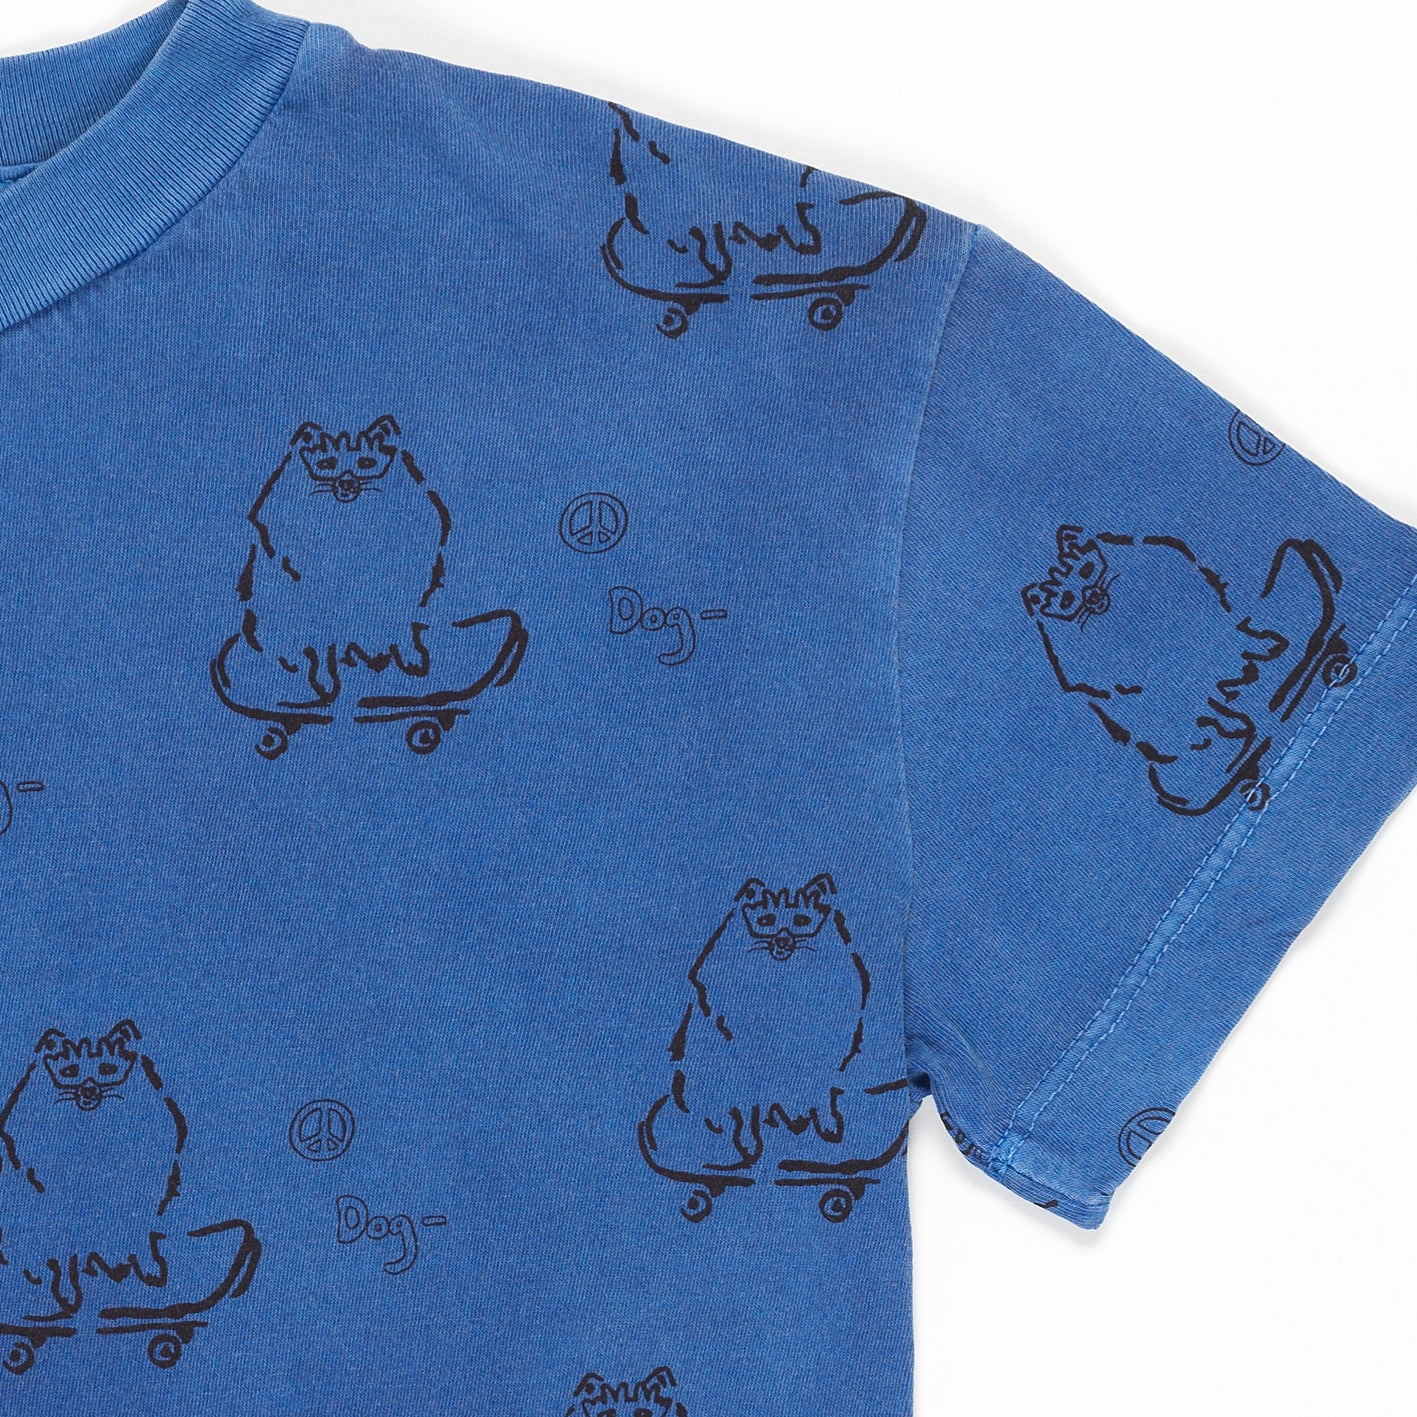 FRESH DINOSAURS - Blue Otto Peace Tee